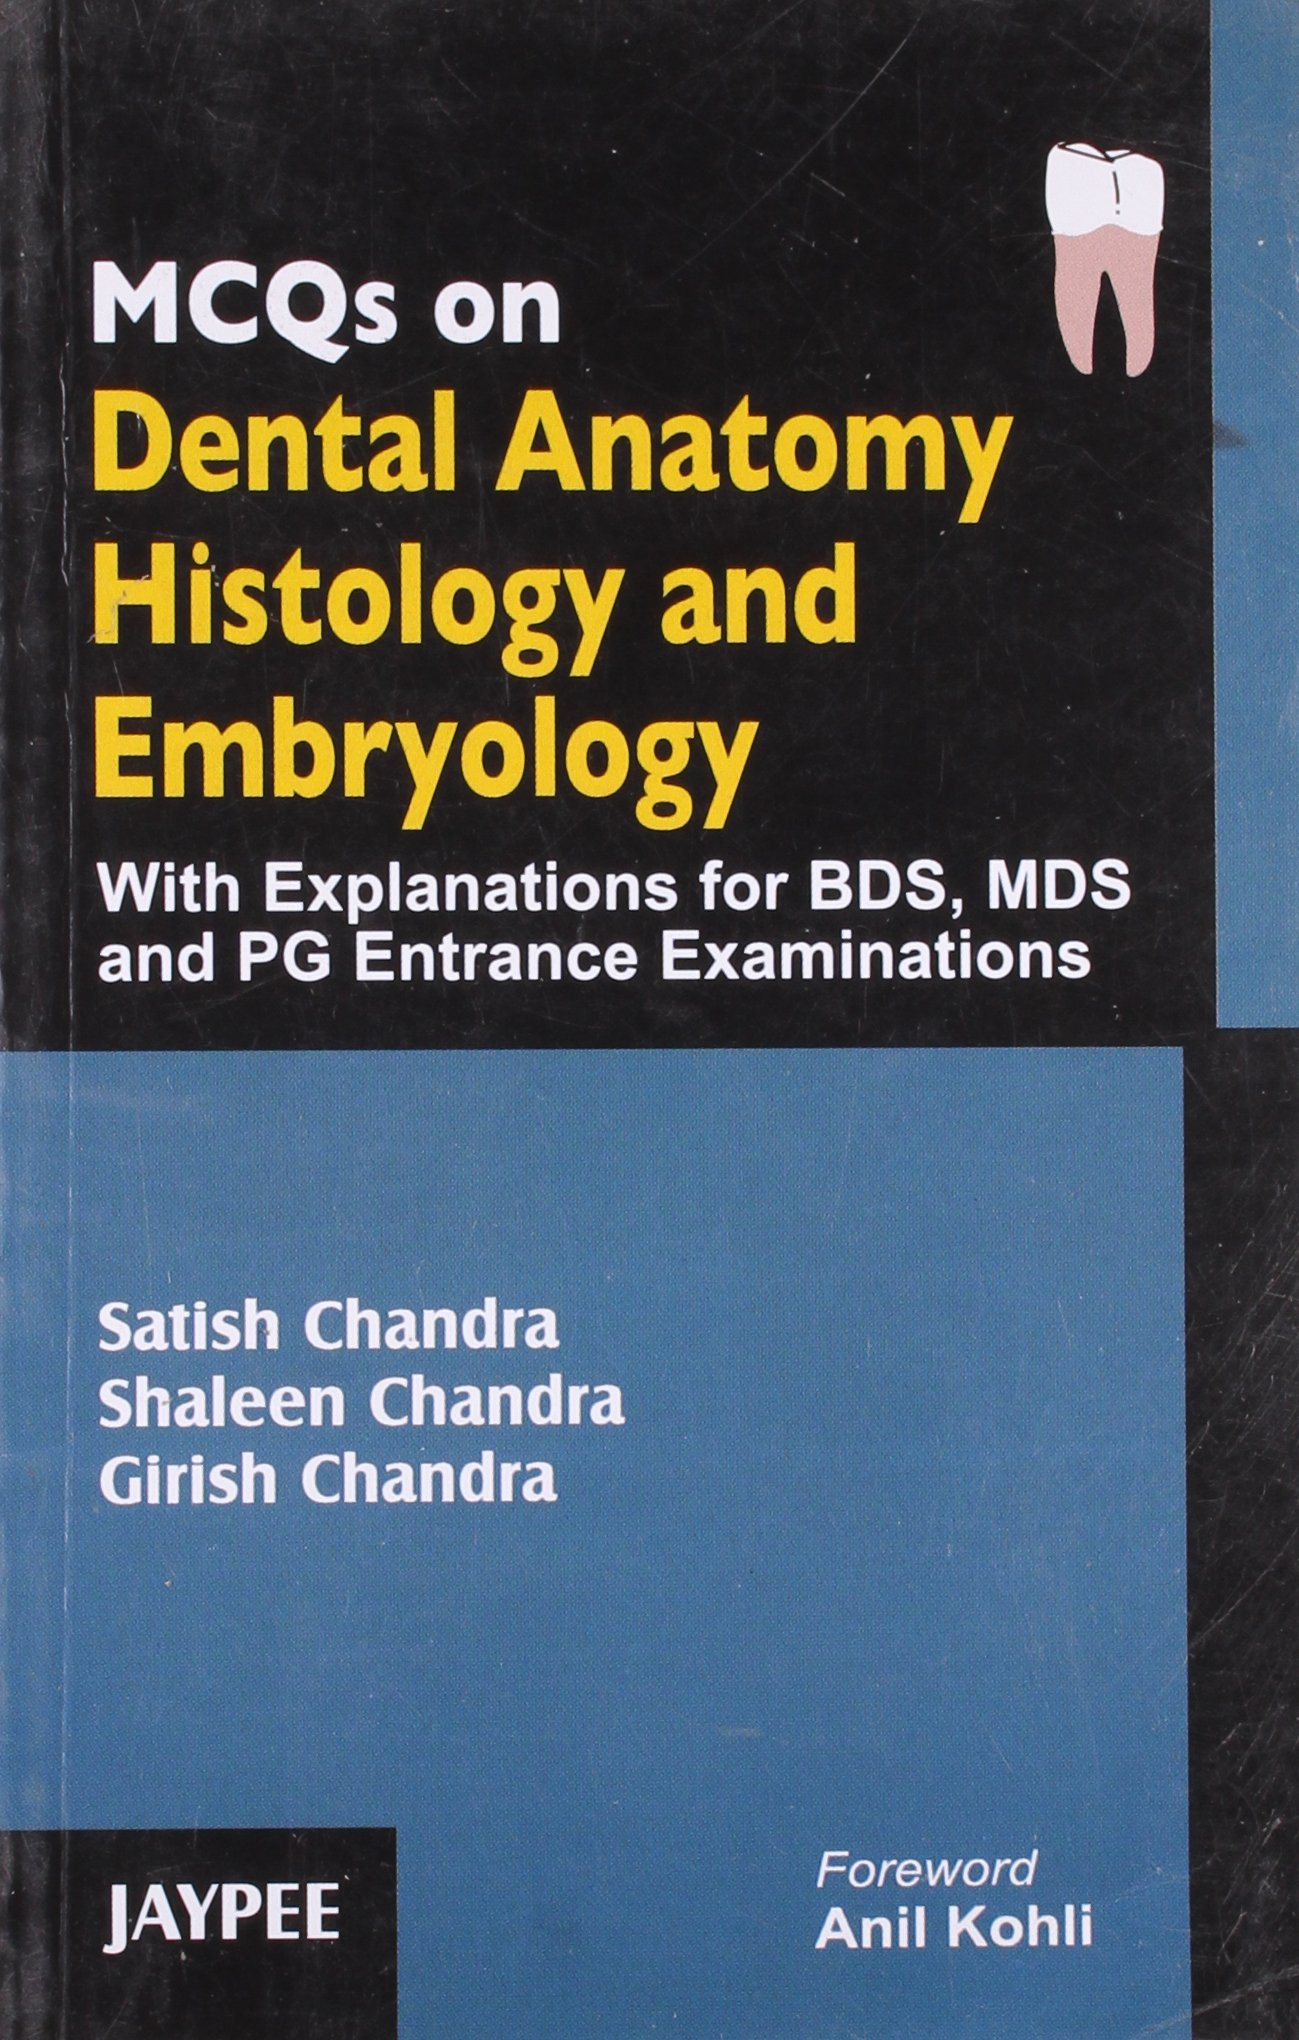 Buy Mcqs On Dental Anatomy Histology And Embryology Book Online at ...